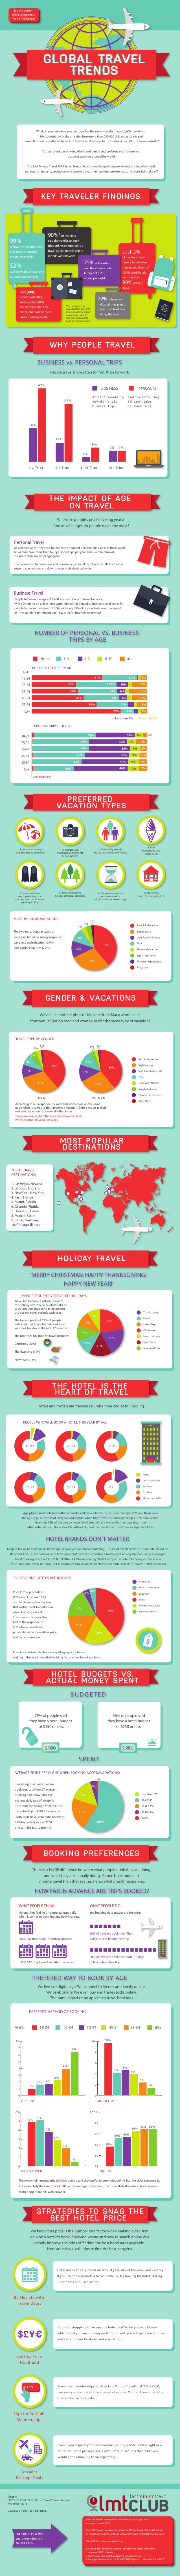 See the bottom of the infographic for a FREE bonus!  Global Travel trends  What do you get when you put together the surve...